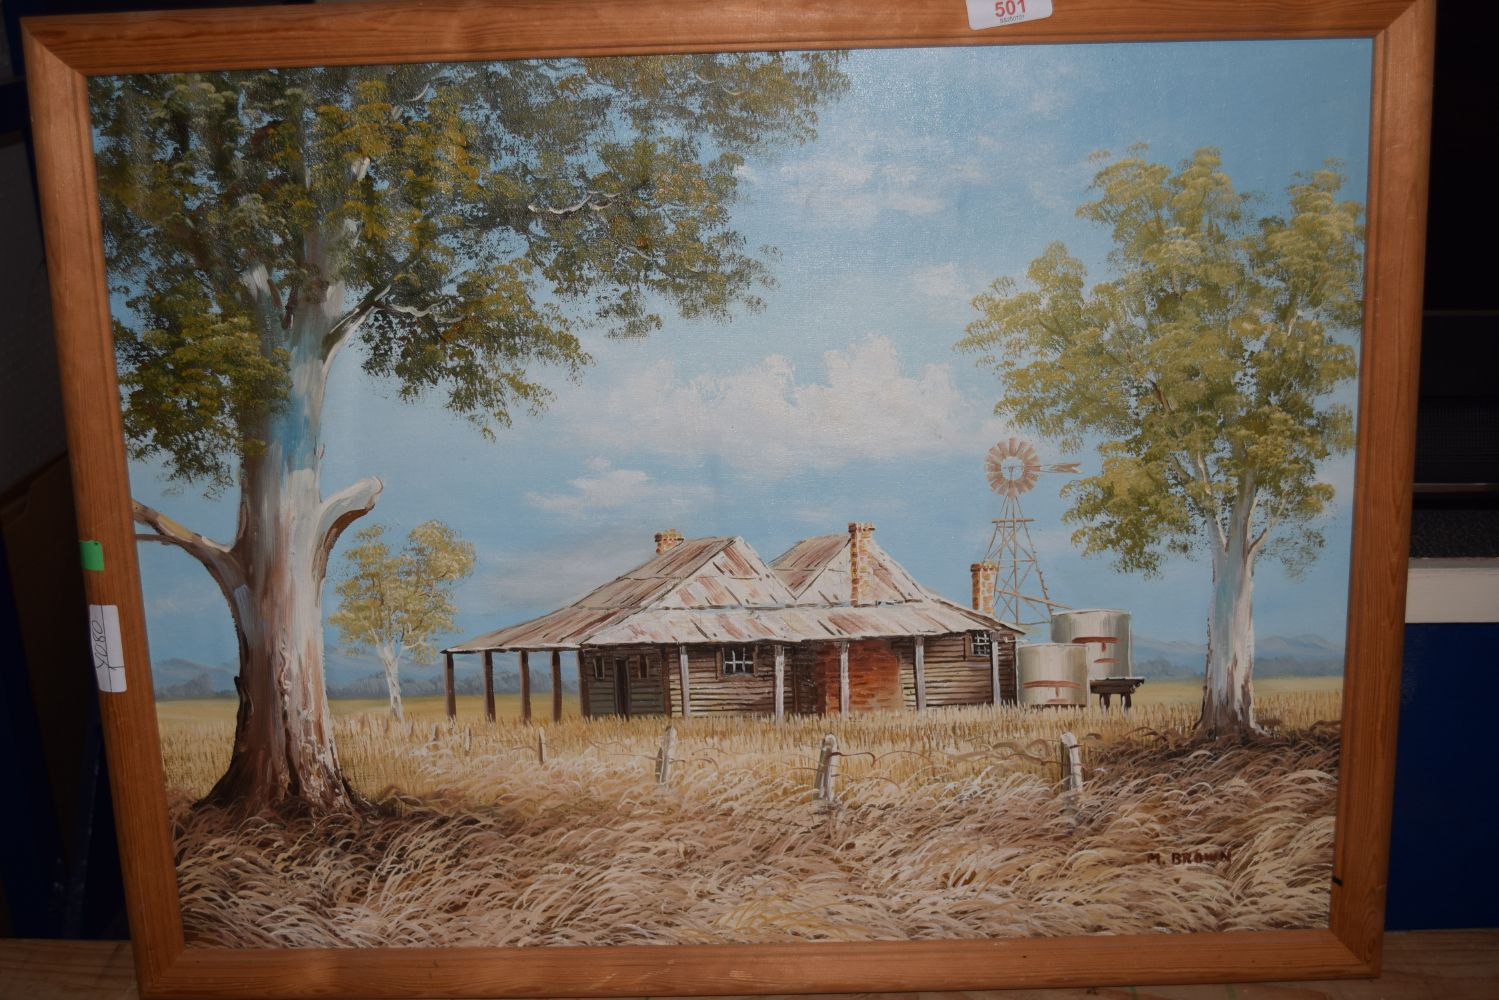 Timed Online Auction inc Household Effects, Antiques & Collectables, boxed Books, and more - Keys Fine Art Auctioneers